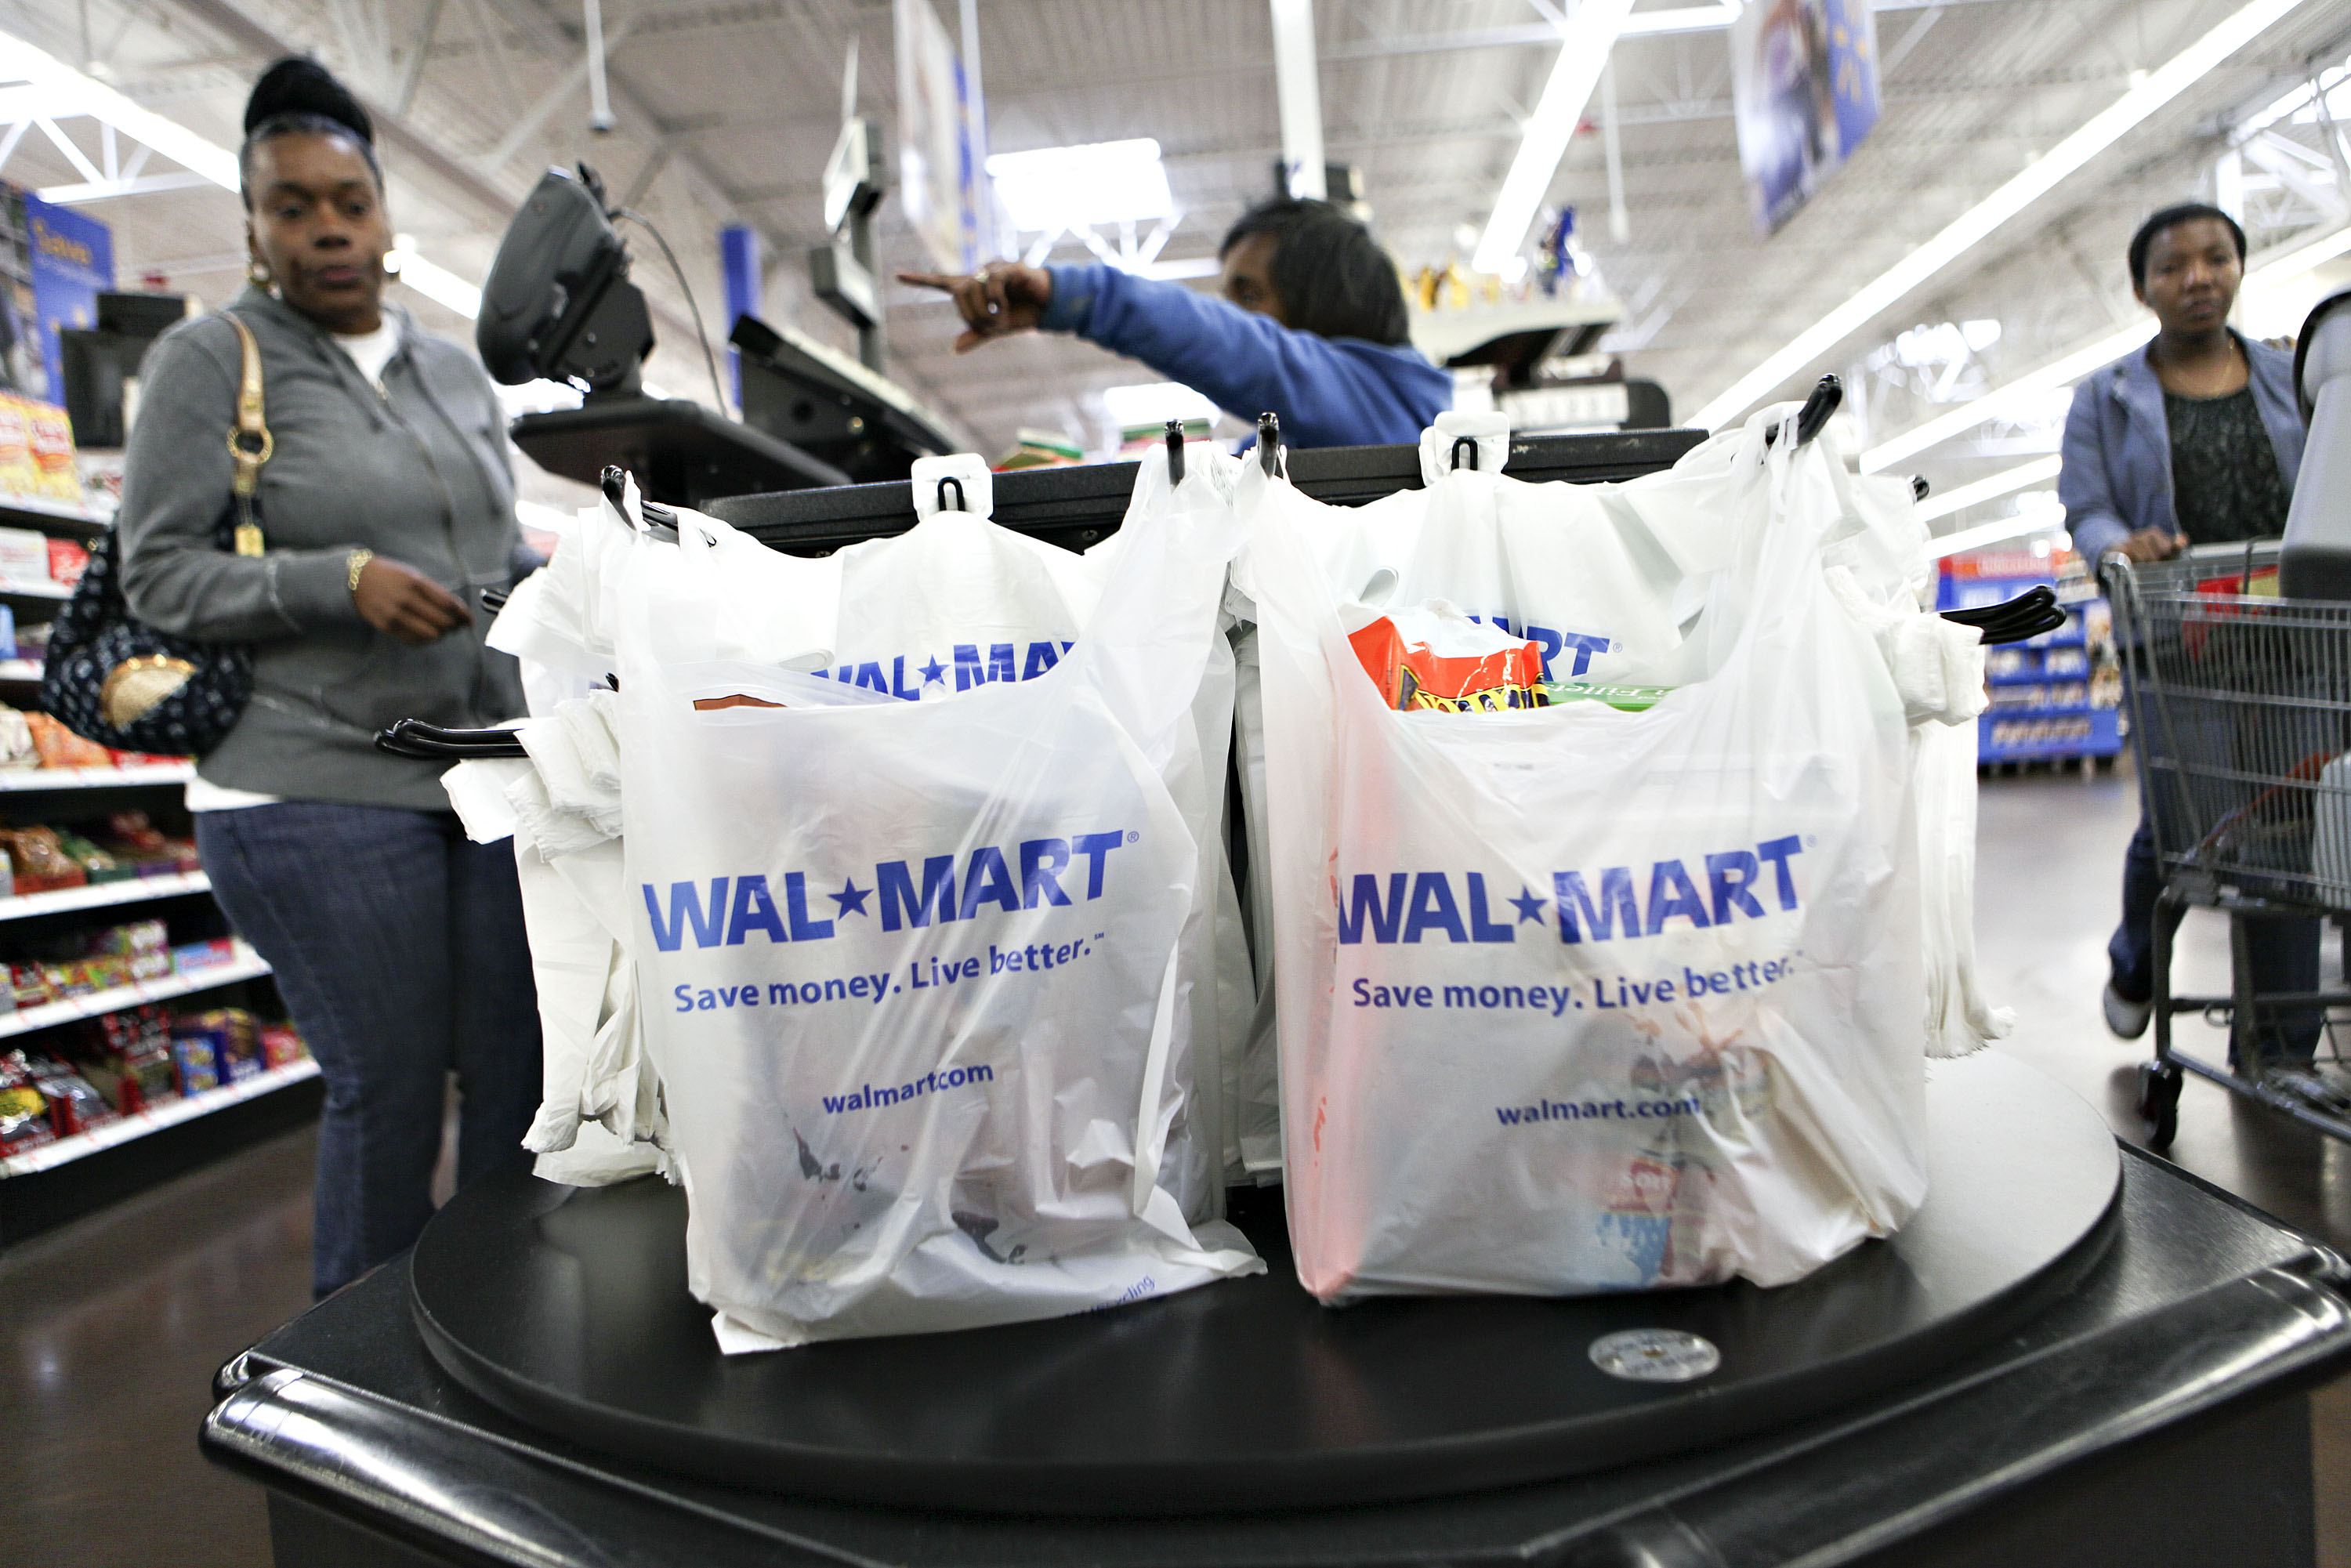 Wal-Mart logos apprear on shopping bags at a cash register i